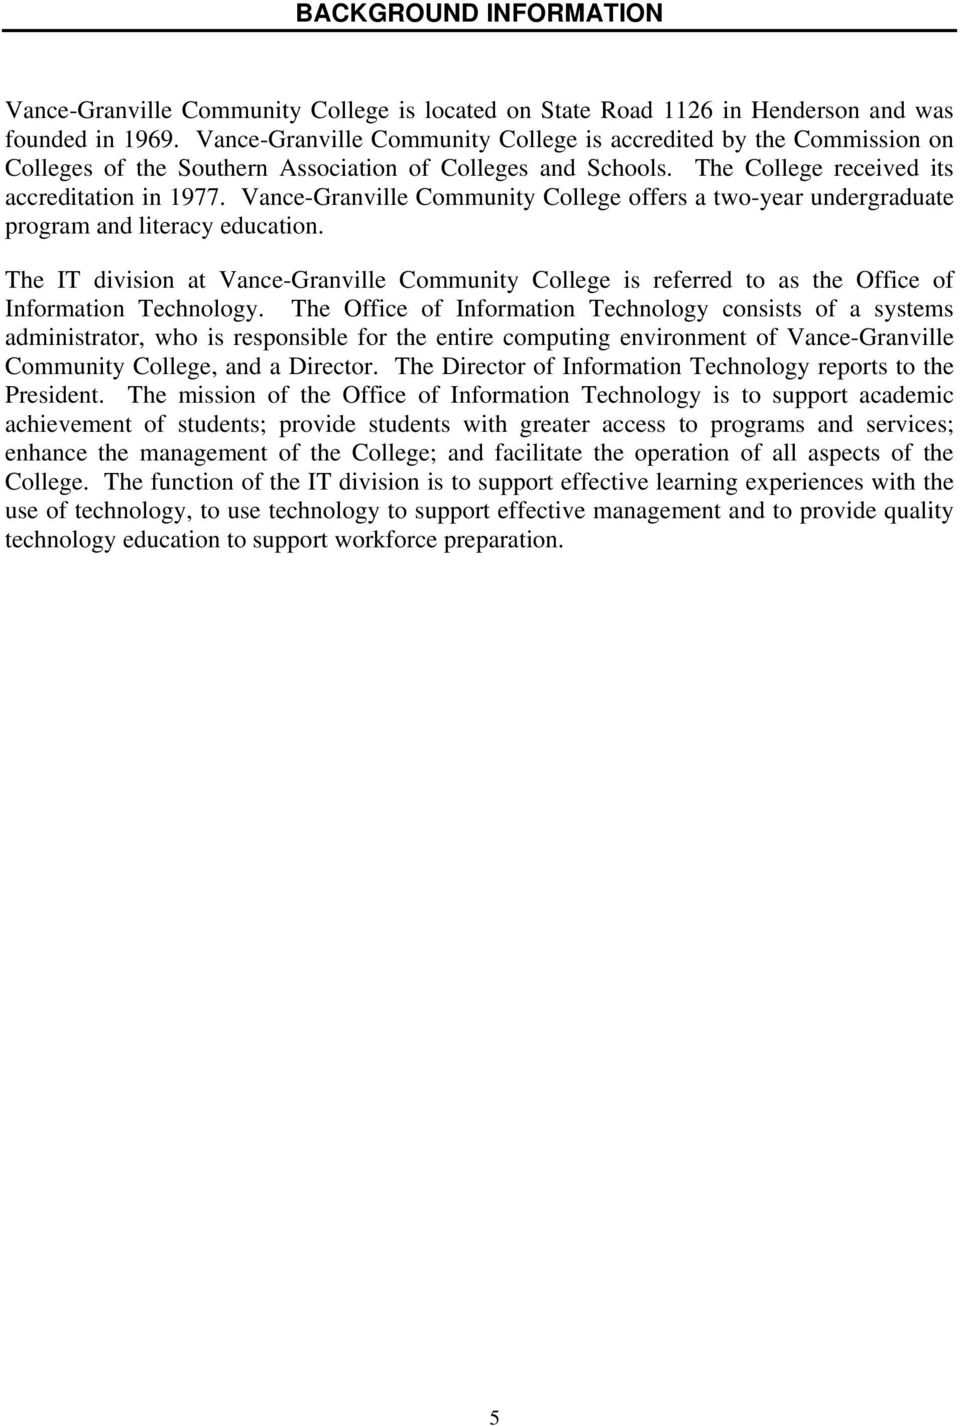 Vance-Granville Community College offers a two-year undergraduate program and literacy education.